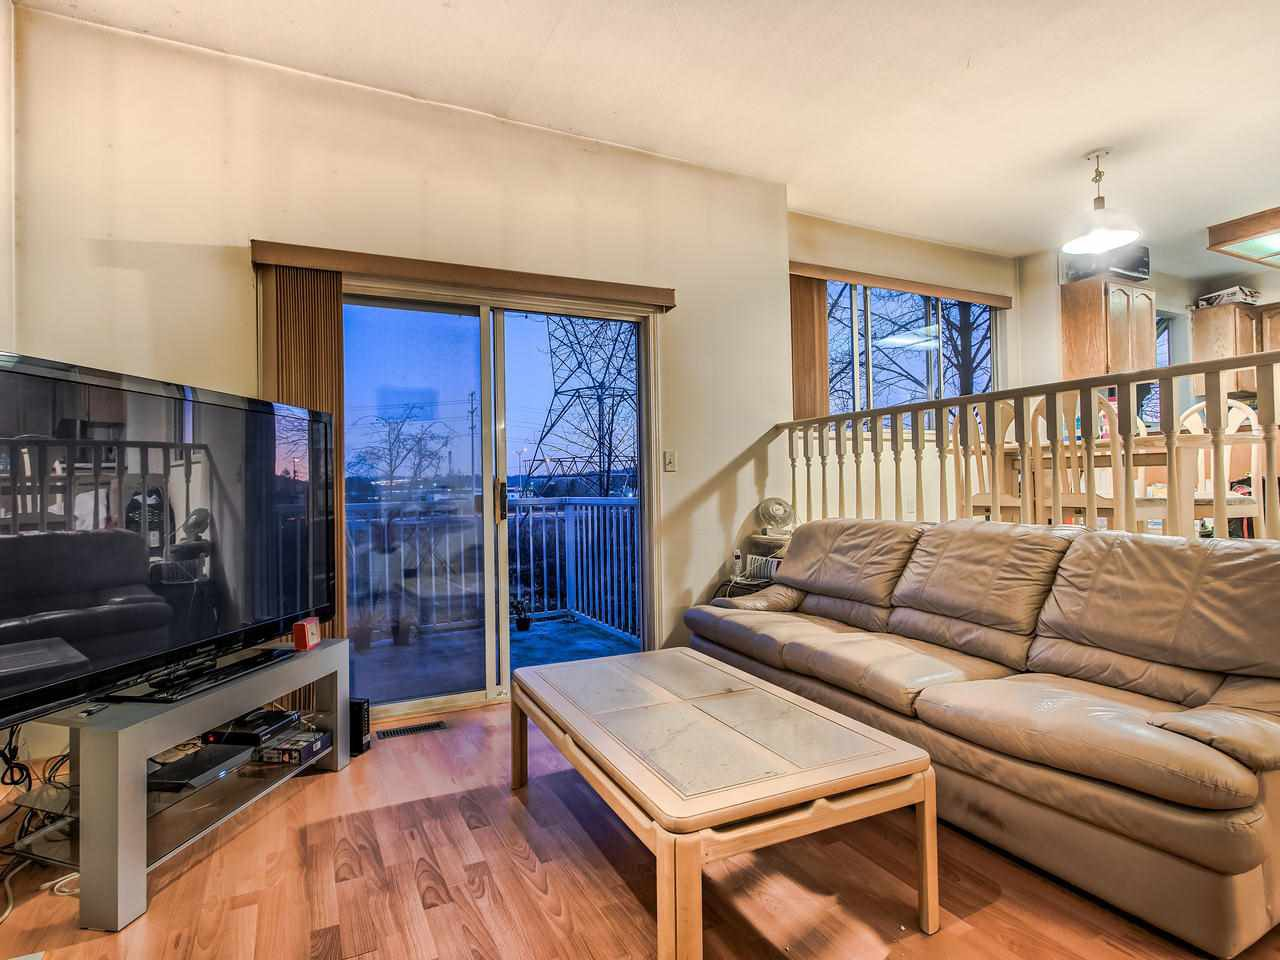 Main Photo: 2380 MARIANA Place in Coquitlam: Cape Horn House for sale : MLS®# R2437965